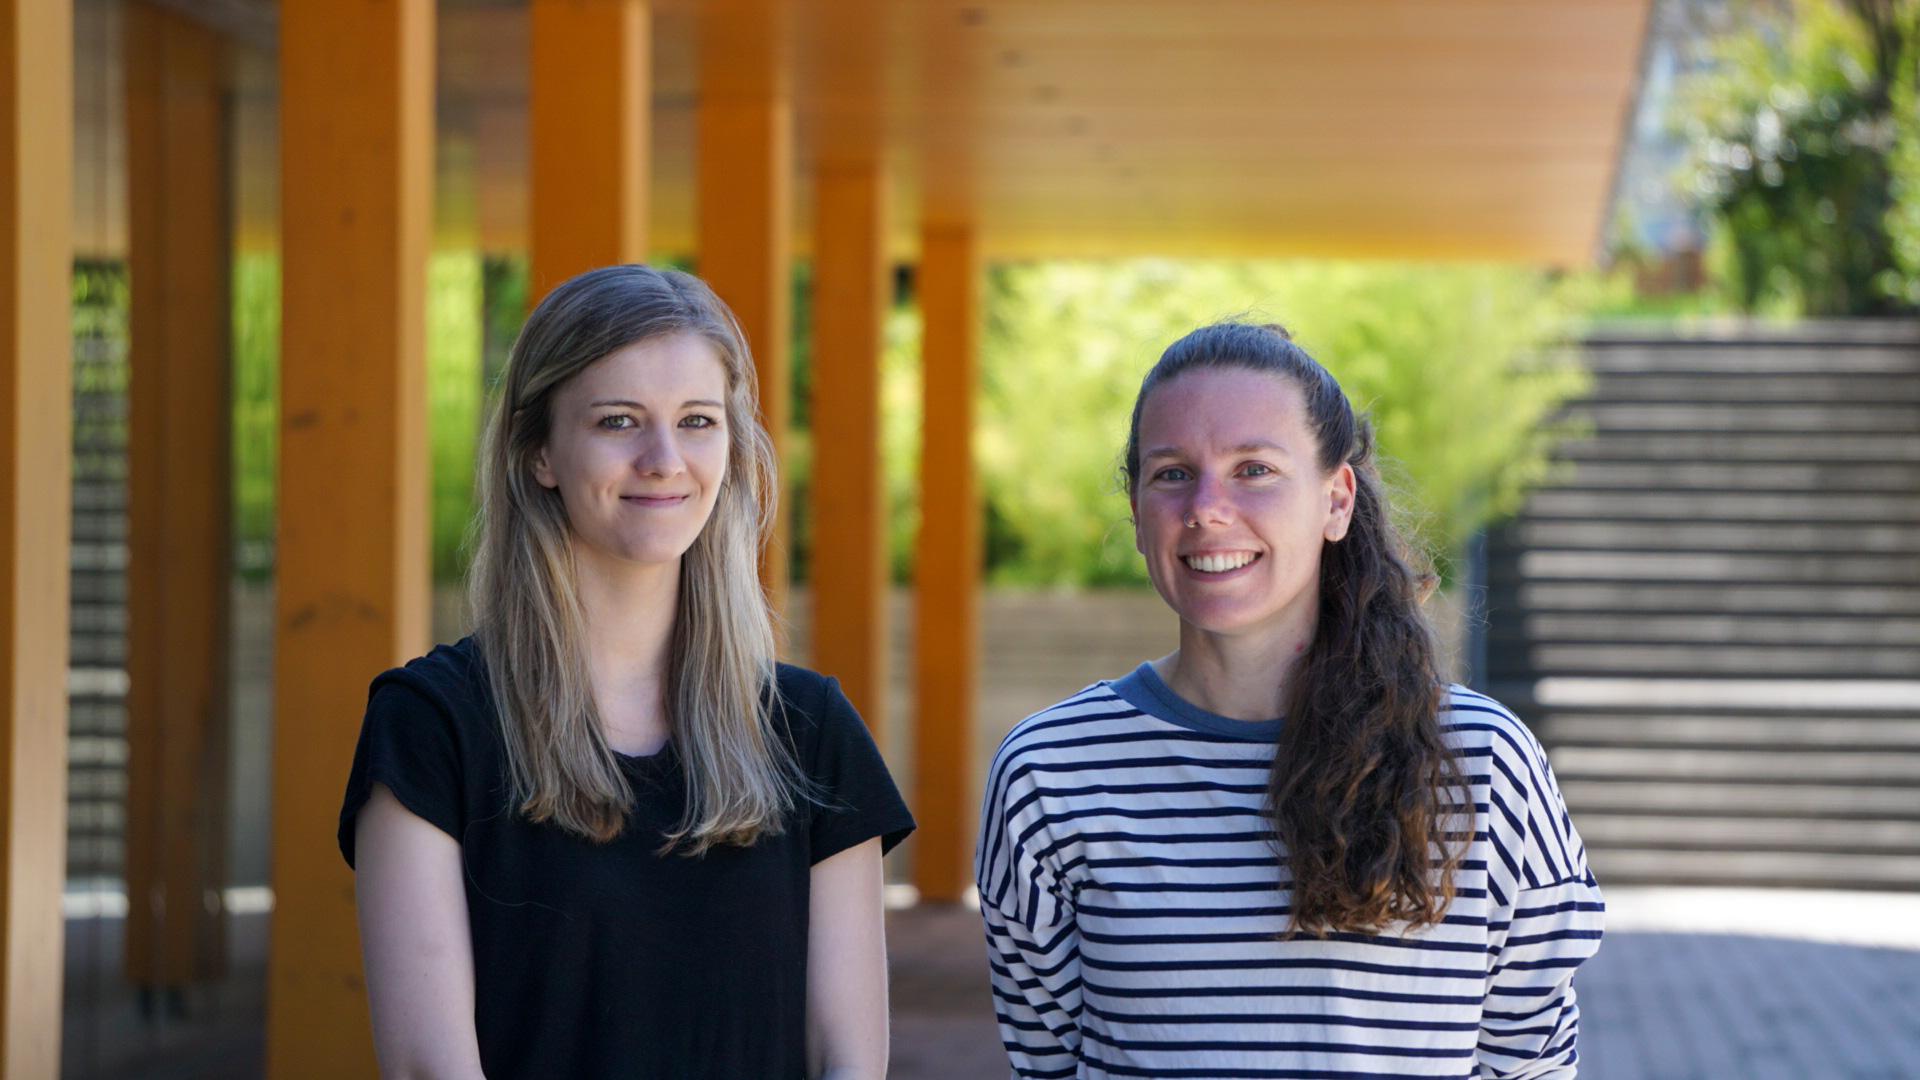 Kwantlen Polytechnic University Marie-Pier Alary and Bailee van Rikxoort students are vying for top spot in a competition to design Canada's first zero-emission concept car.